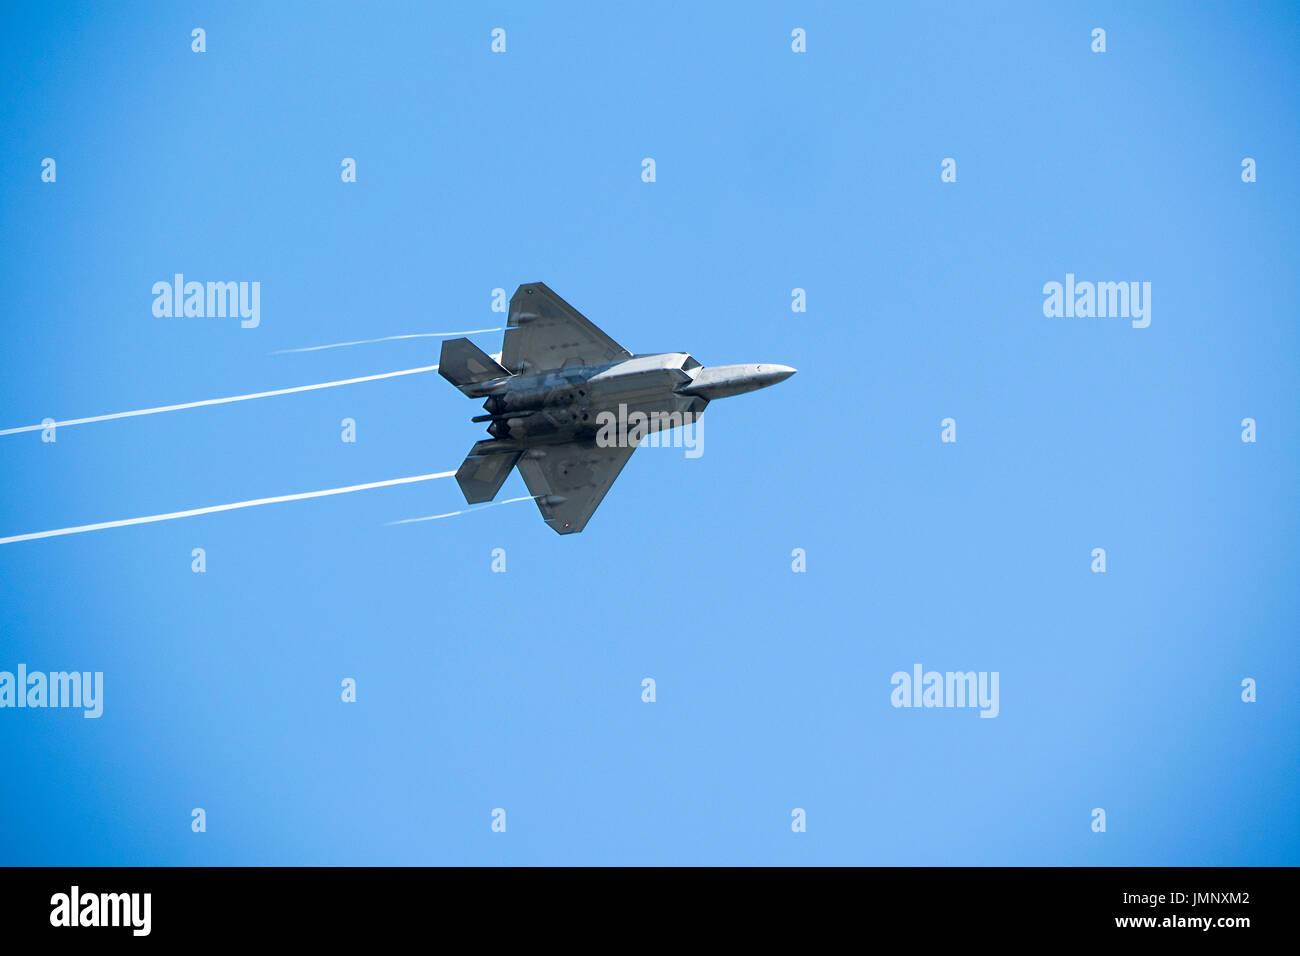 Lockheed Martin F-22 Raptor flying over Tri-Cities, Washington State, USA, before airshow. - Stock Image